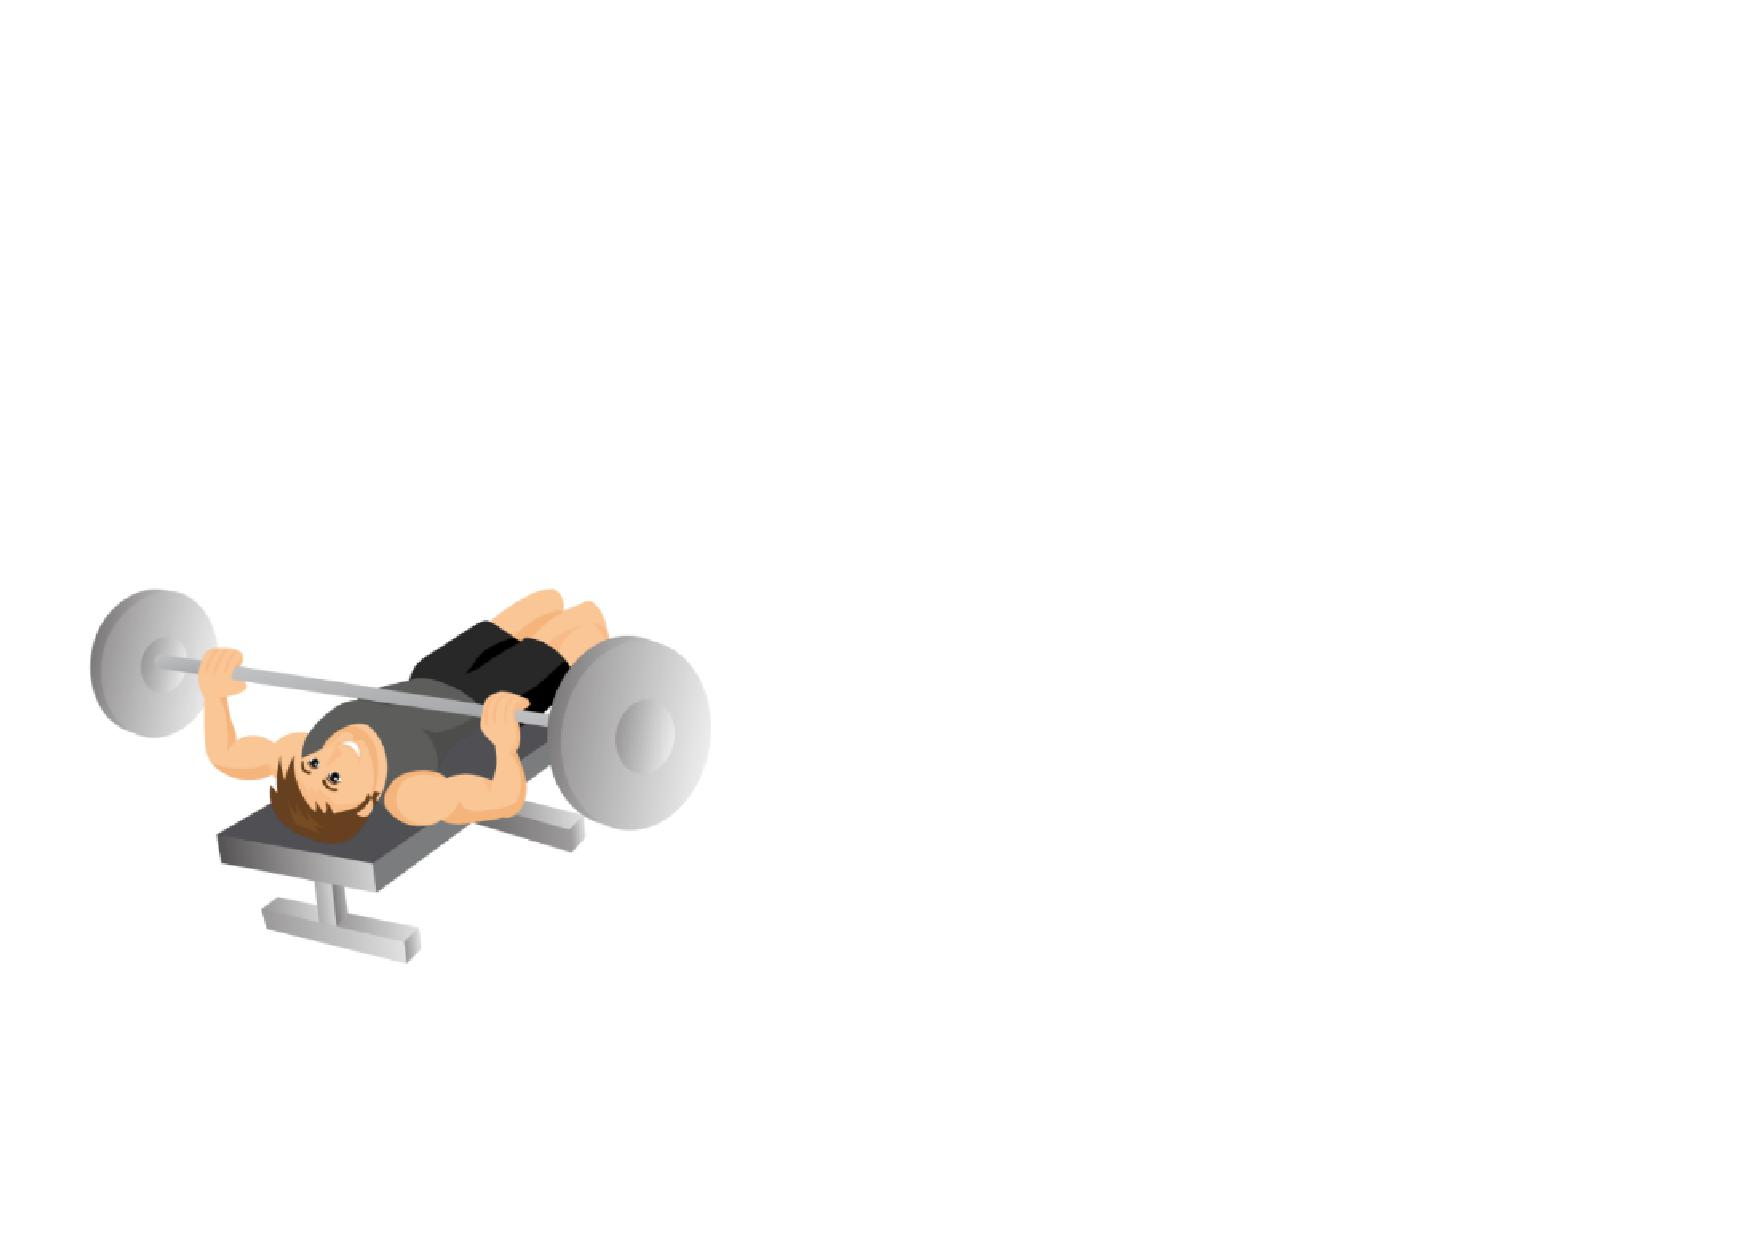 Gym fitness full workout. Dumbbell clipart bench press bar